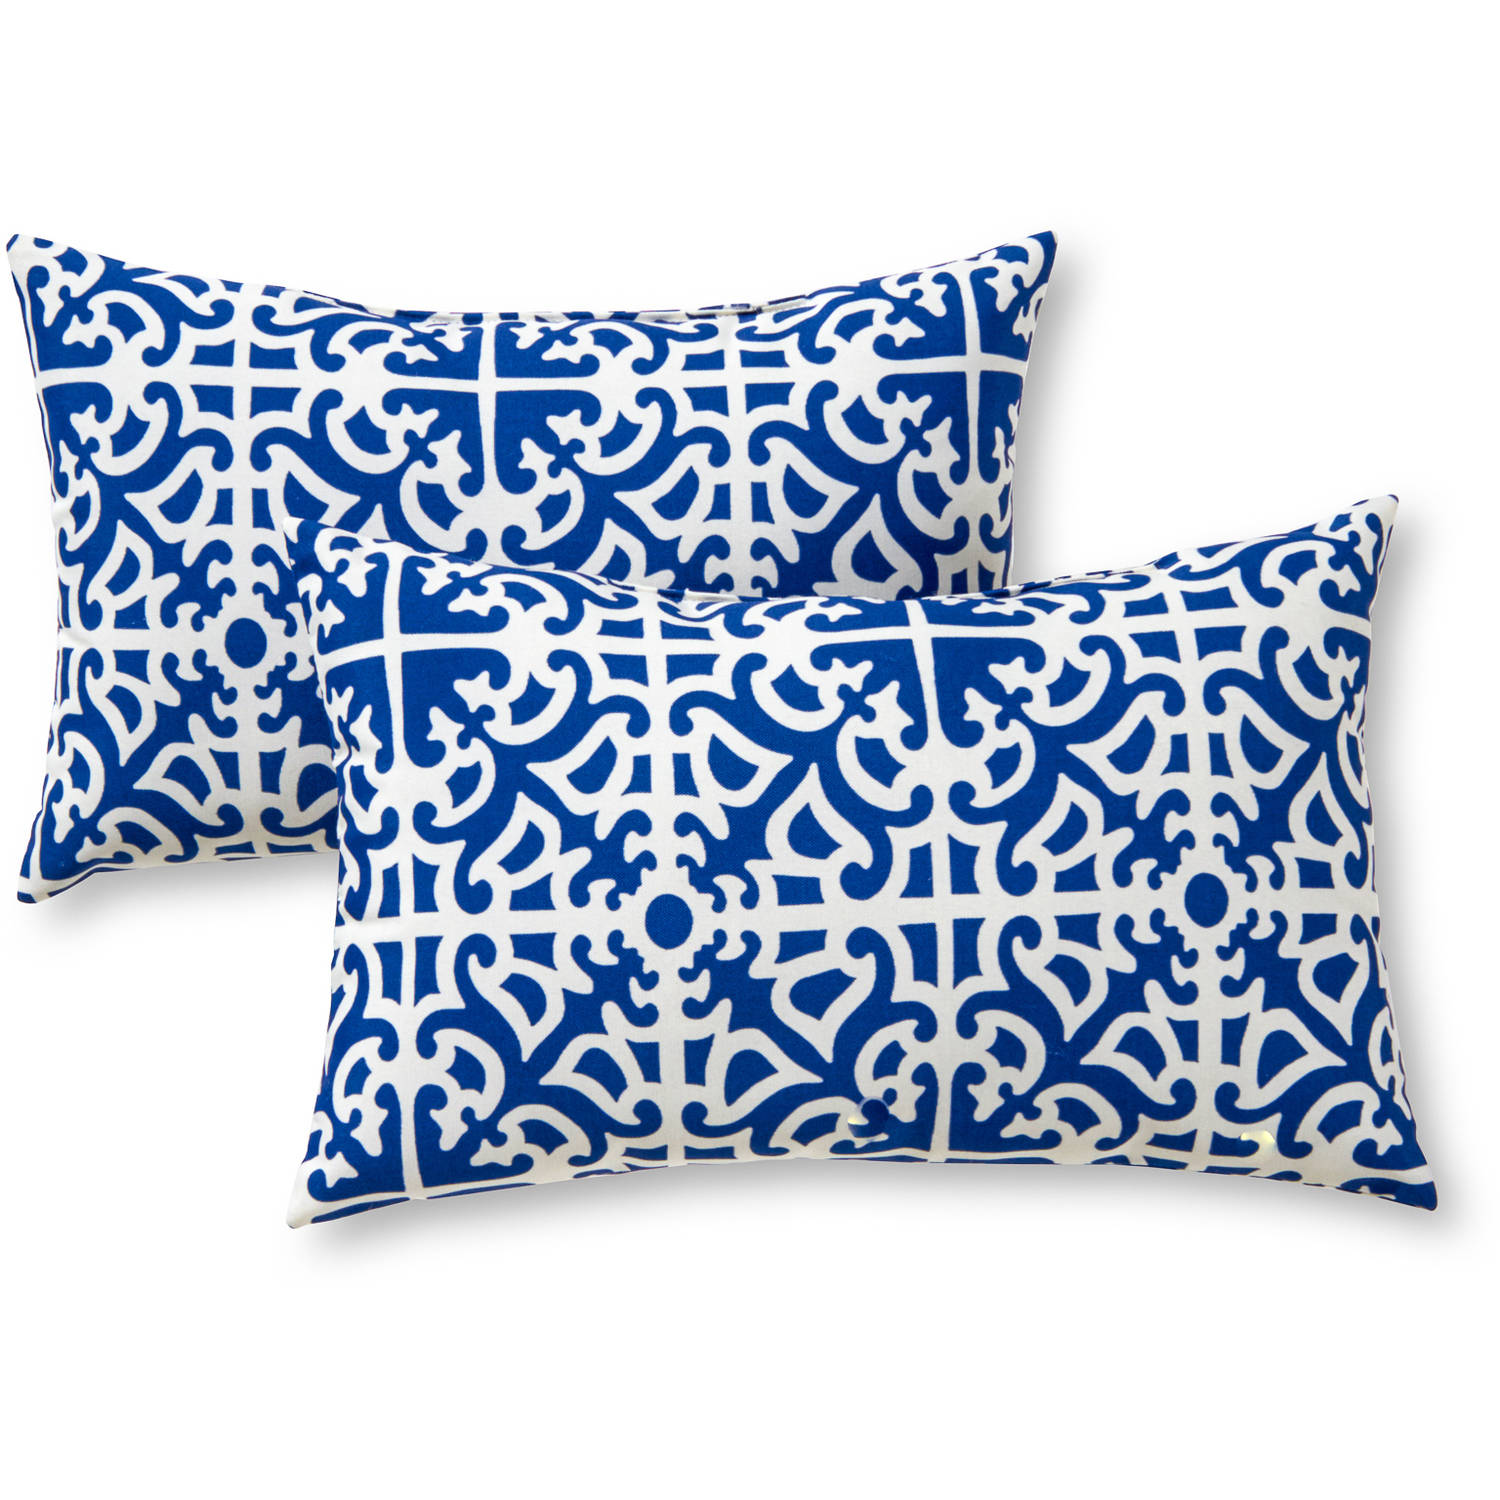 Greendale Home Fashions Rectangle Outdoor Accent Pillows, Set Of 2, Indigo